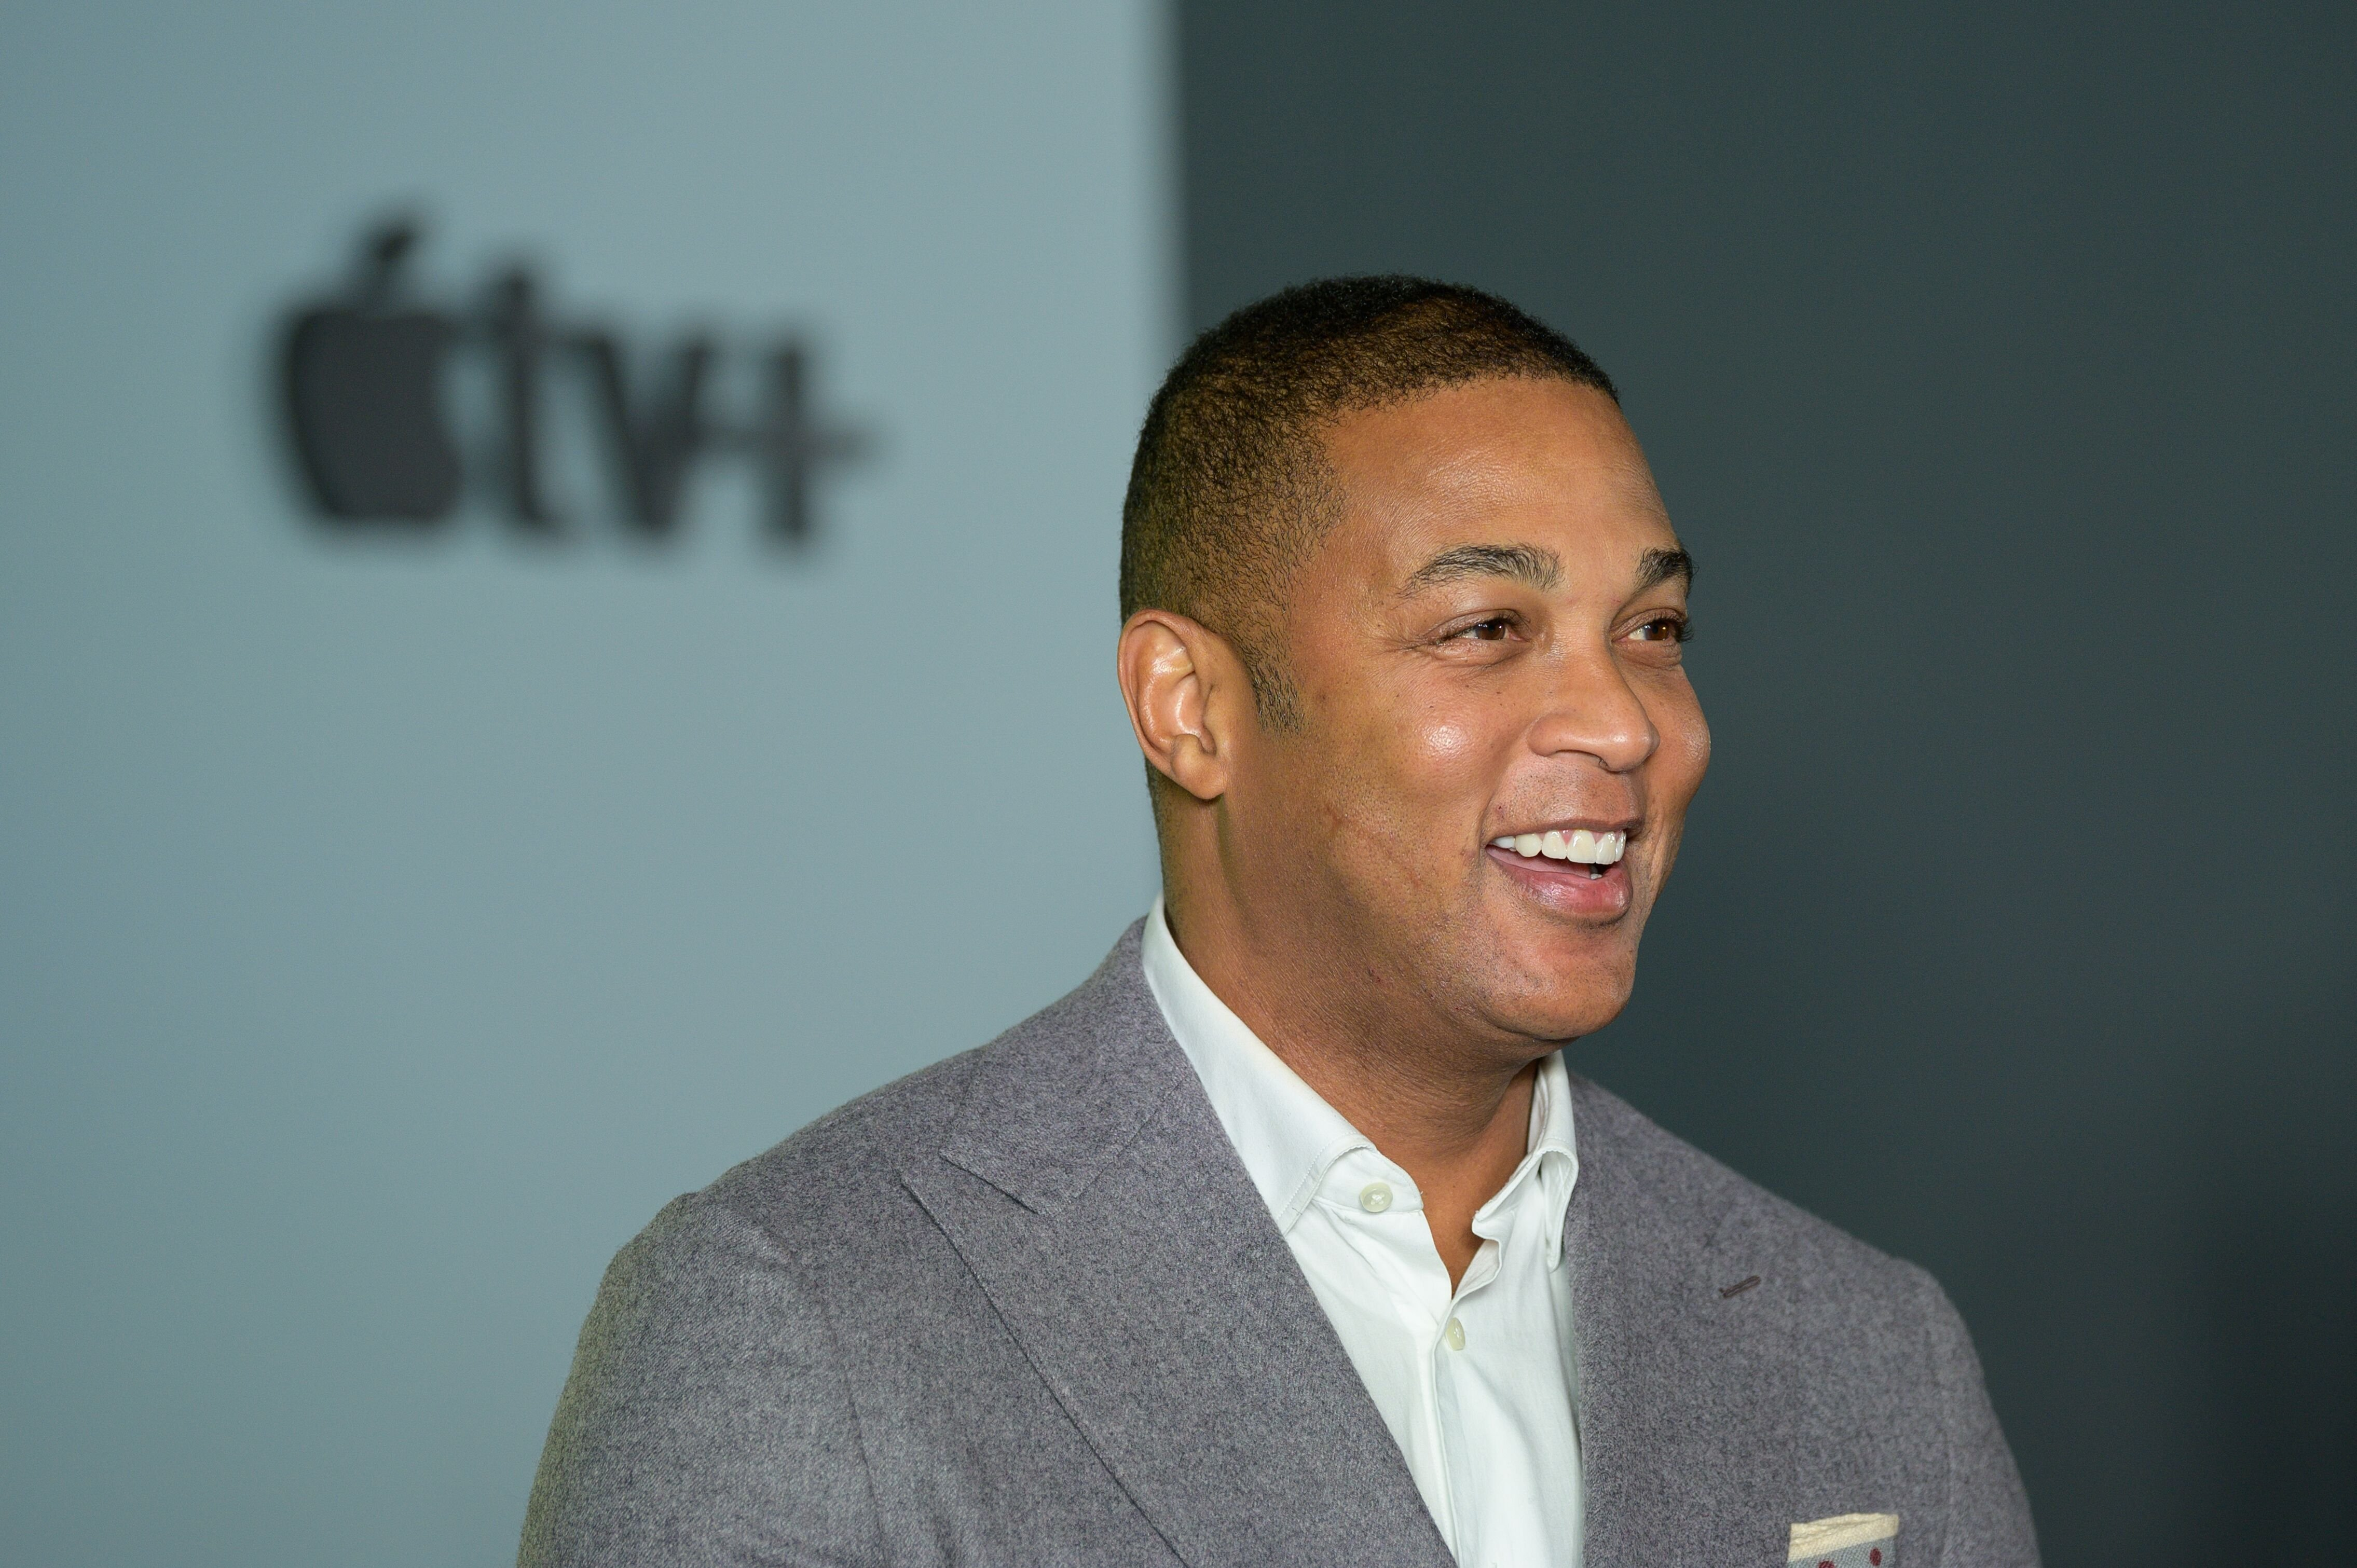 Image Credits: Getty Images | Lemon is a 54-year-old news anchor born in Baton Rouge, Louisiana